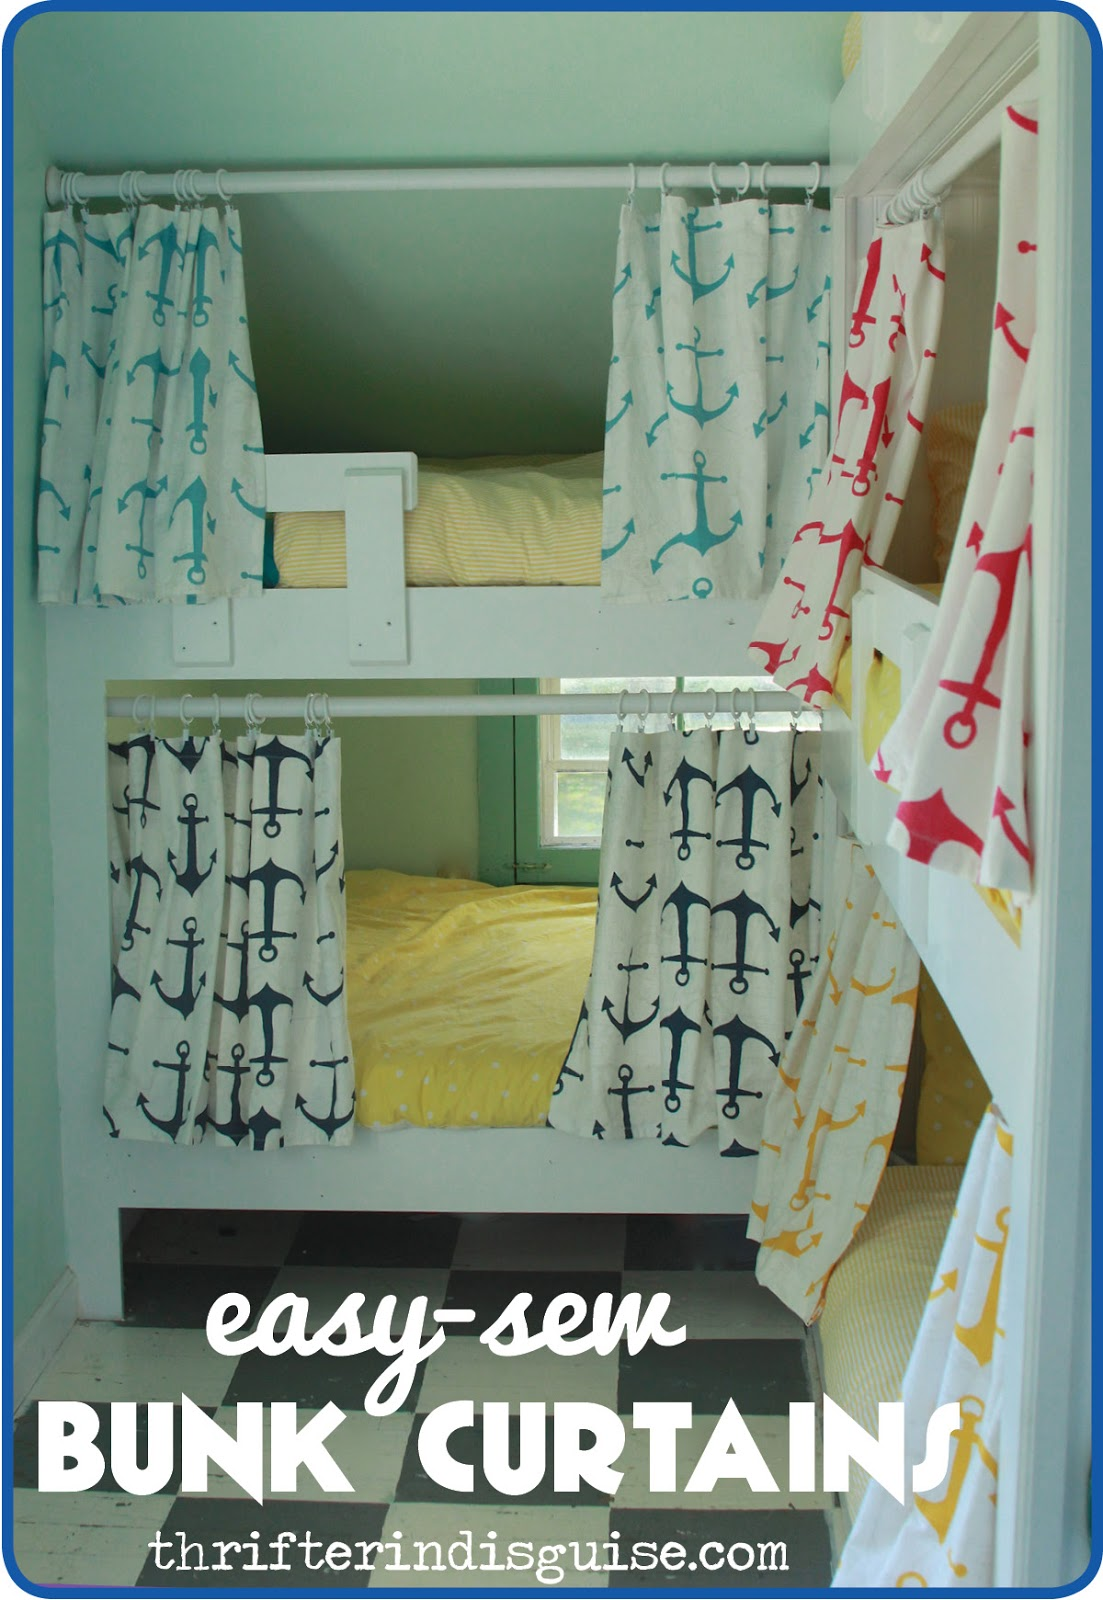 Bunk bed curtains - An Easy Fun Bunk Bed Upgrade